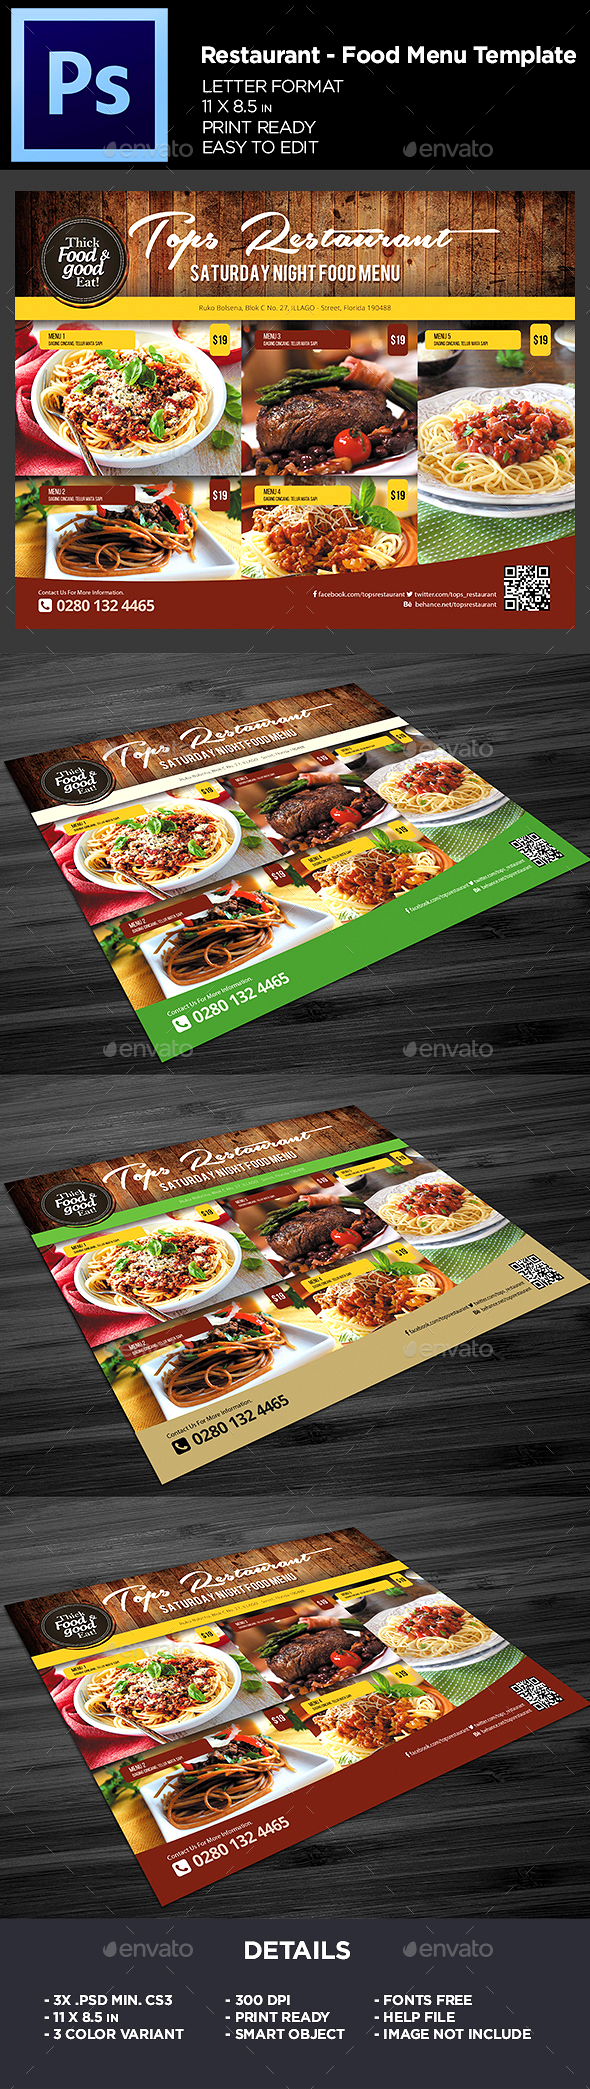 Restaurant Menu - Food Menu Flyer Template - Restaurant Flyers